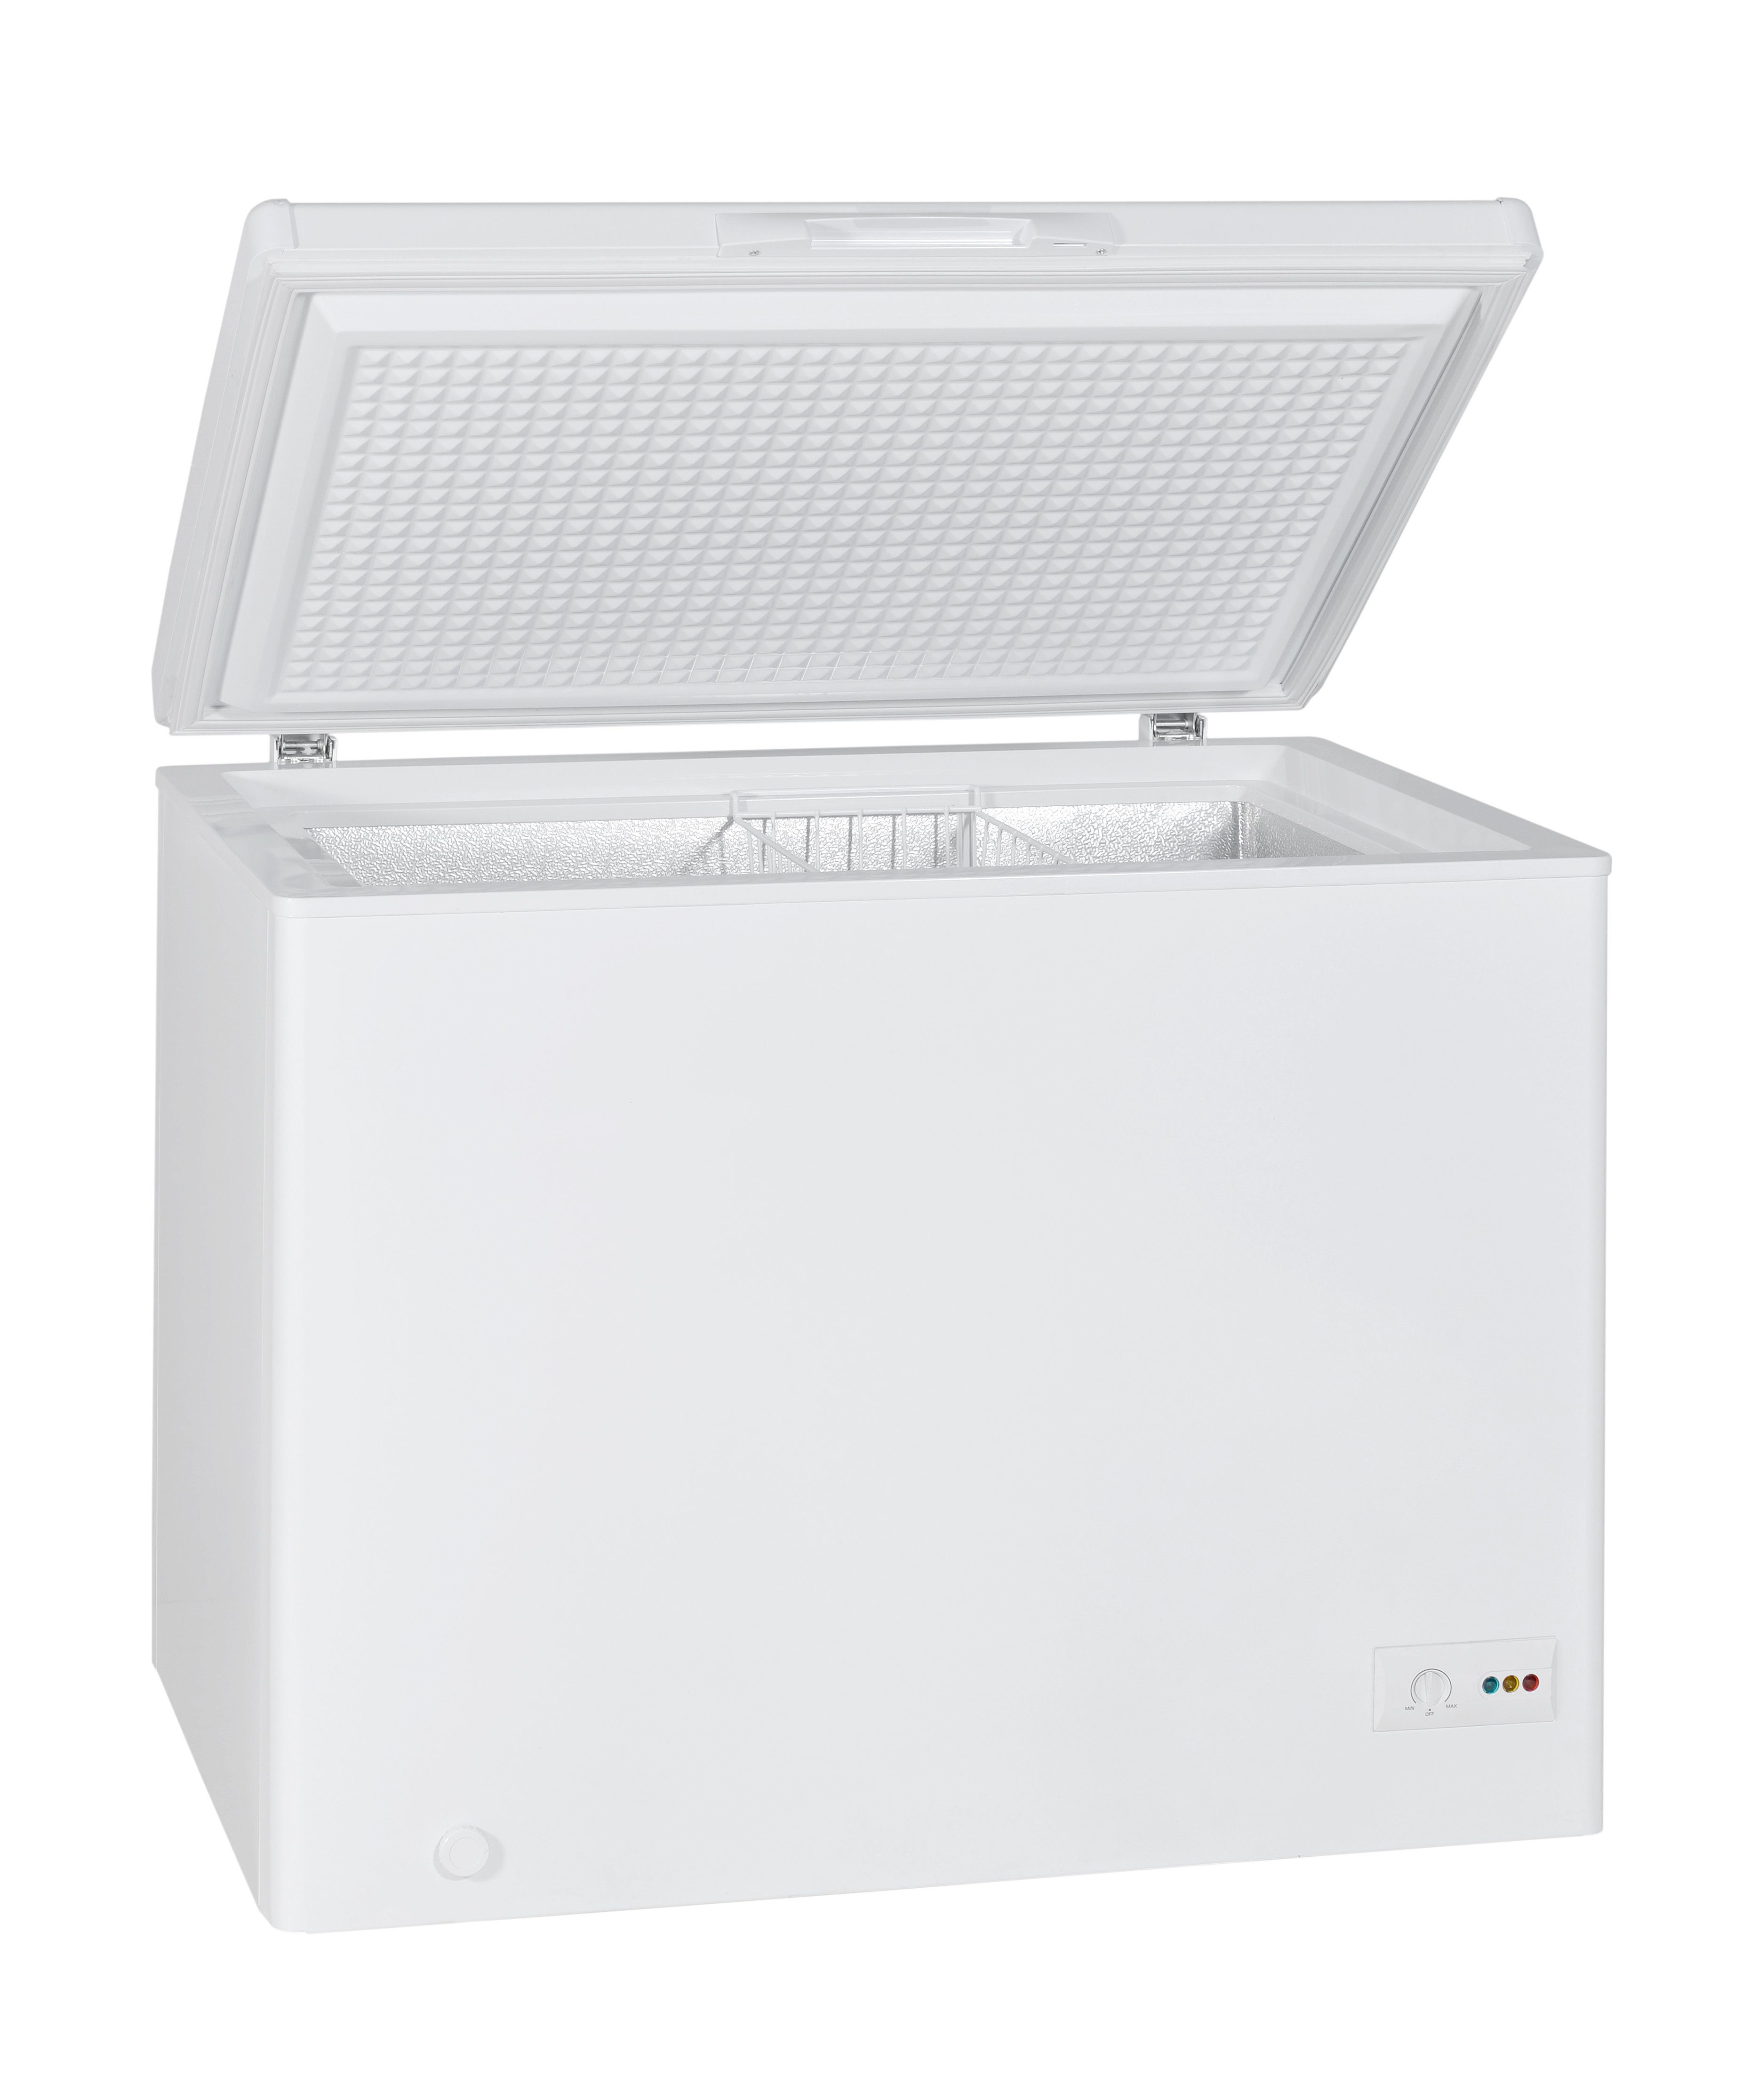 Home chest freezer isolated with clipping path